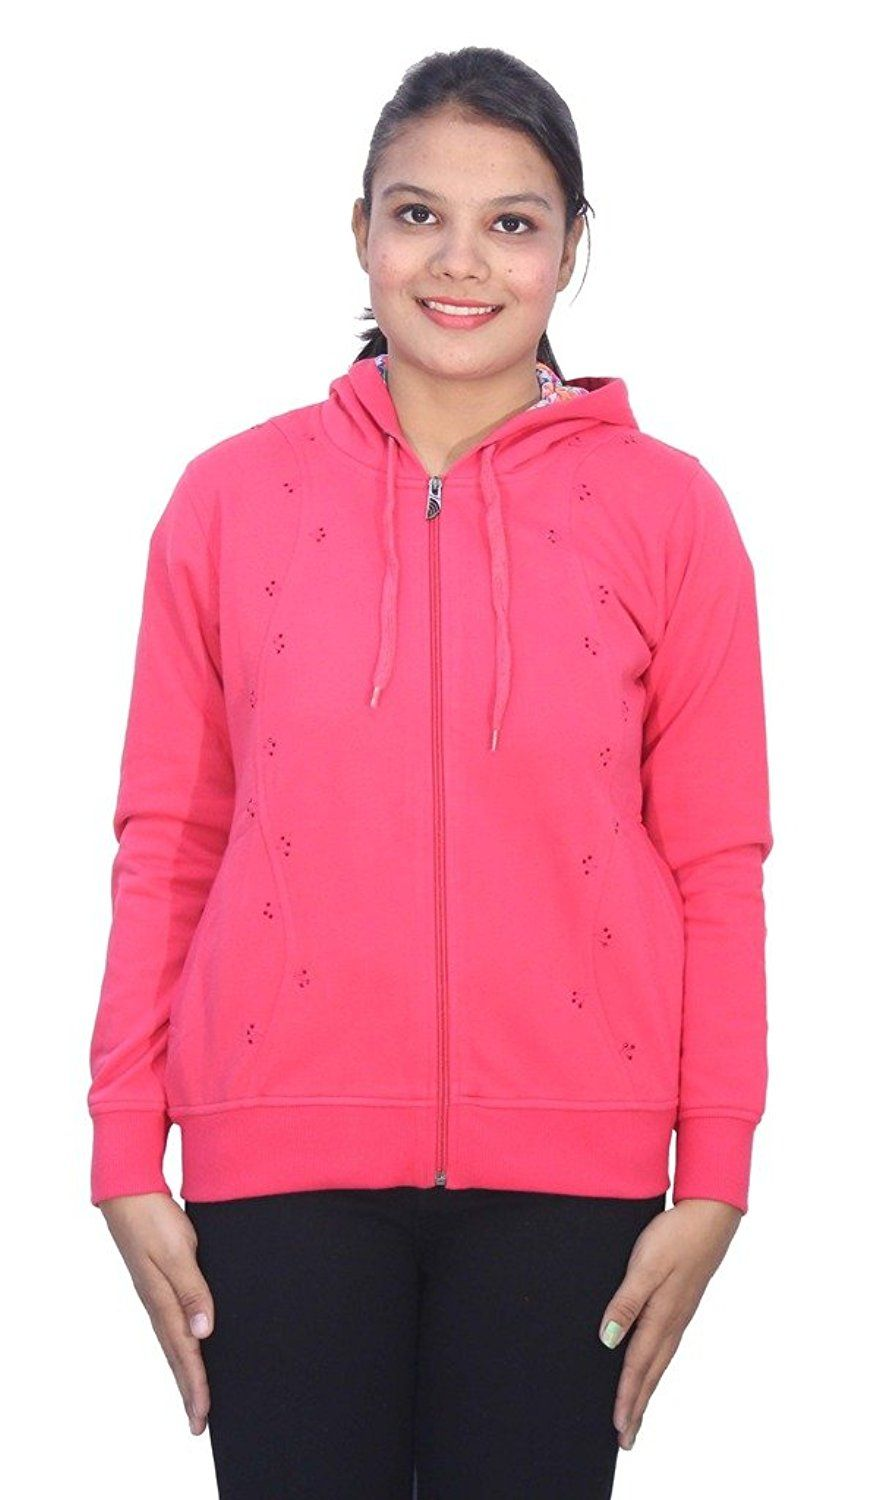 Romano Women's Hot and Trendy Pink Winter Hoodie Sweatshirt Fleece Jacket ** Special offer just for you. See it now! : Women's Fashion for FREE